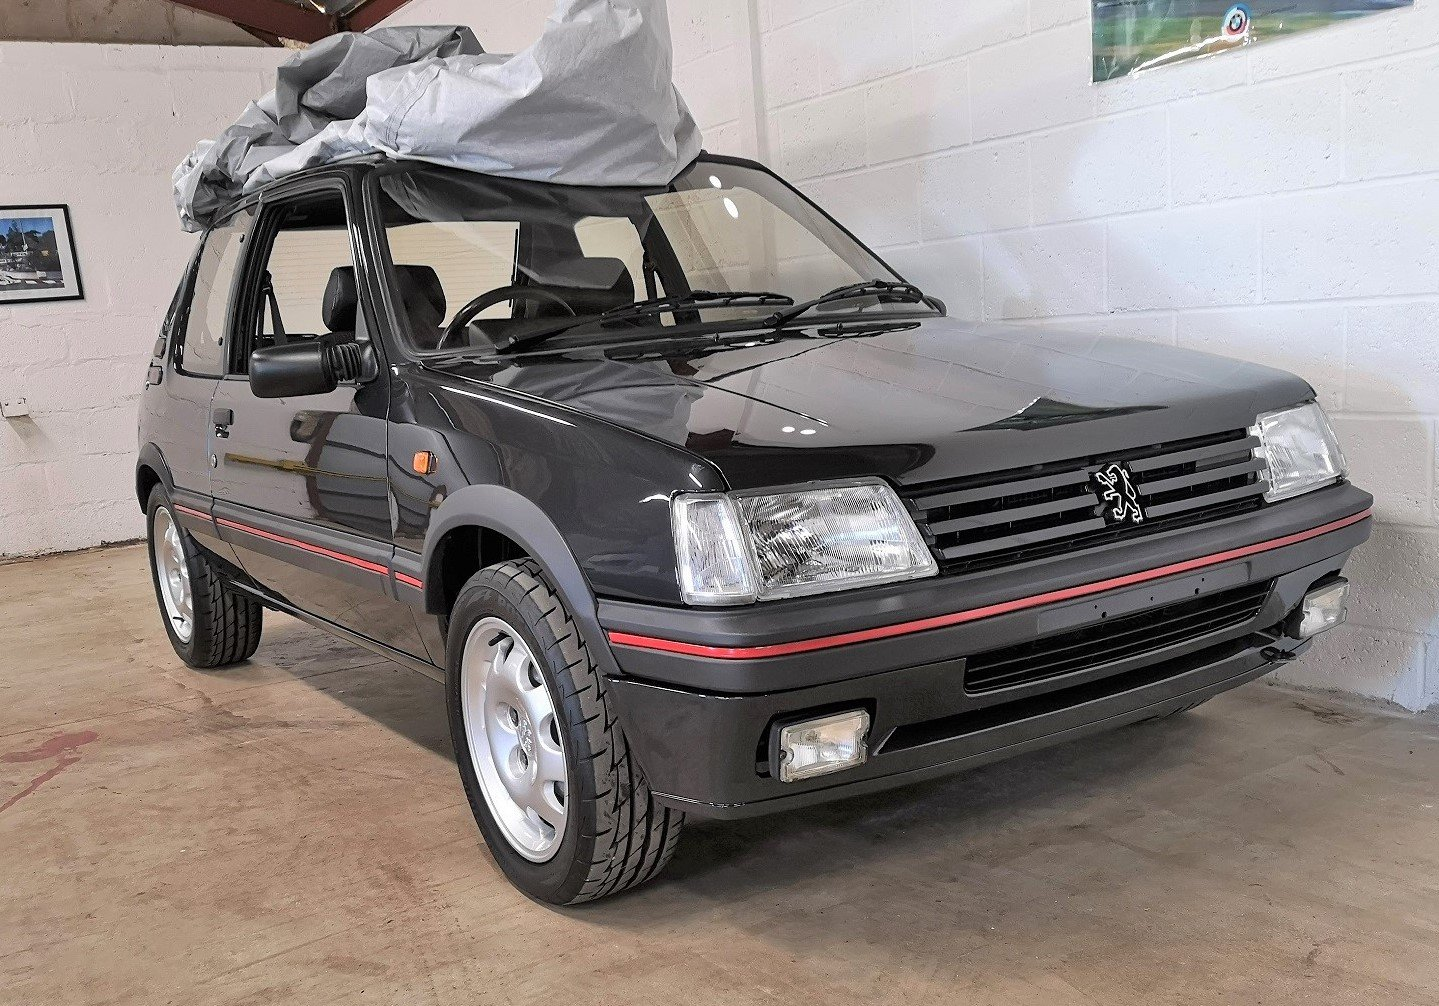 1991 Peugeot 205 GTI 1.9,65,534 miles,A/C,Seibu Japan SOLD (picture 1 of 6)